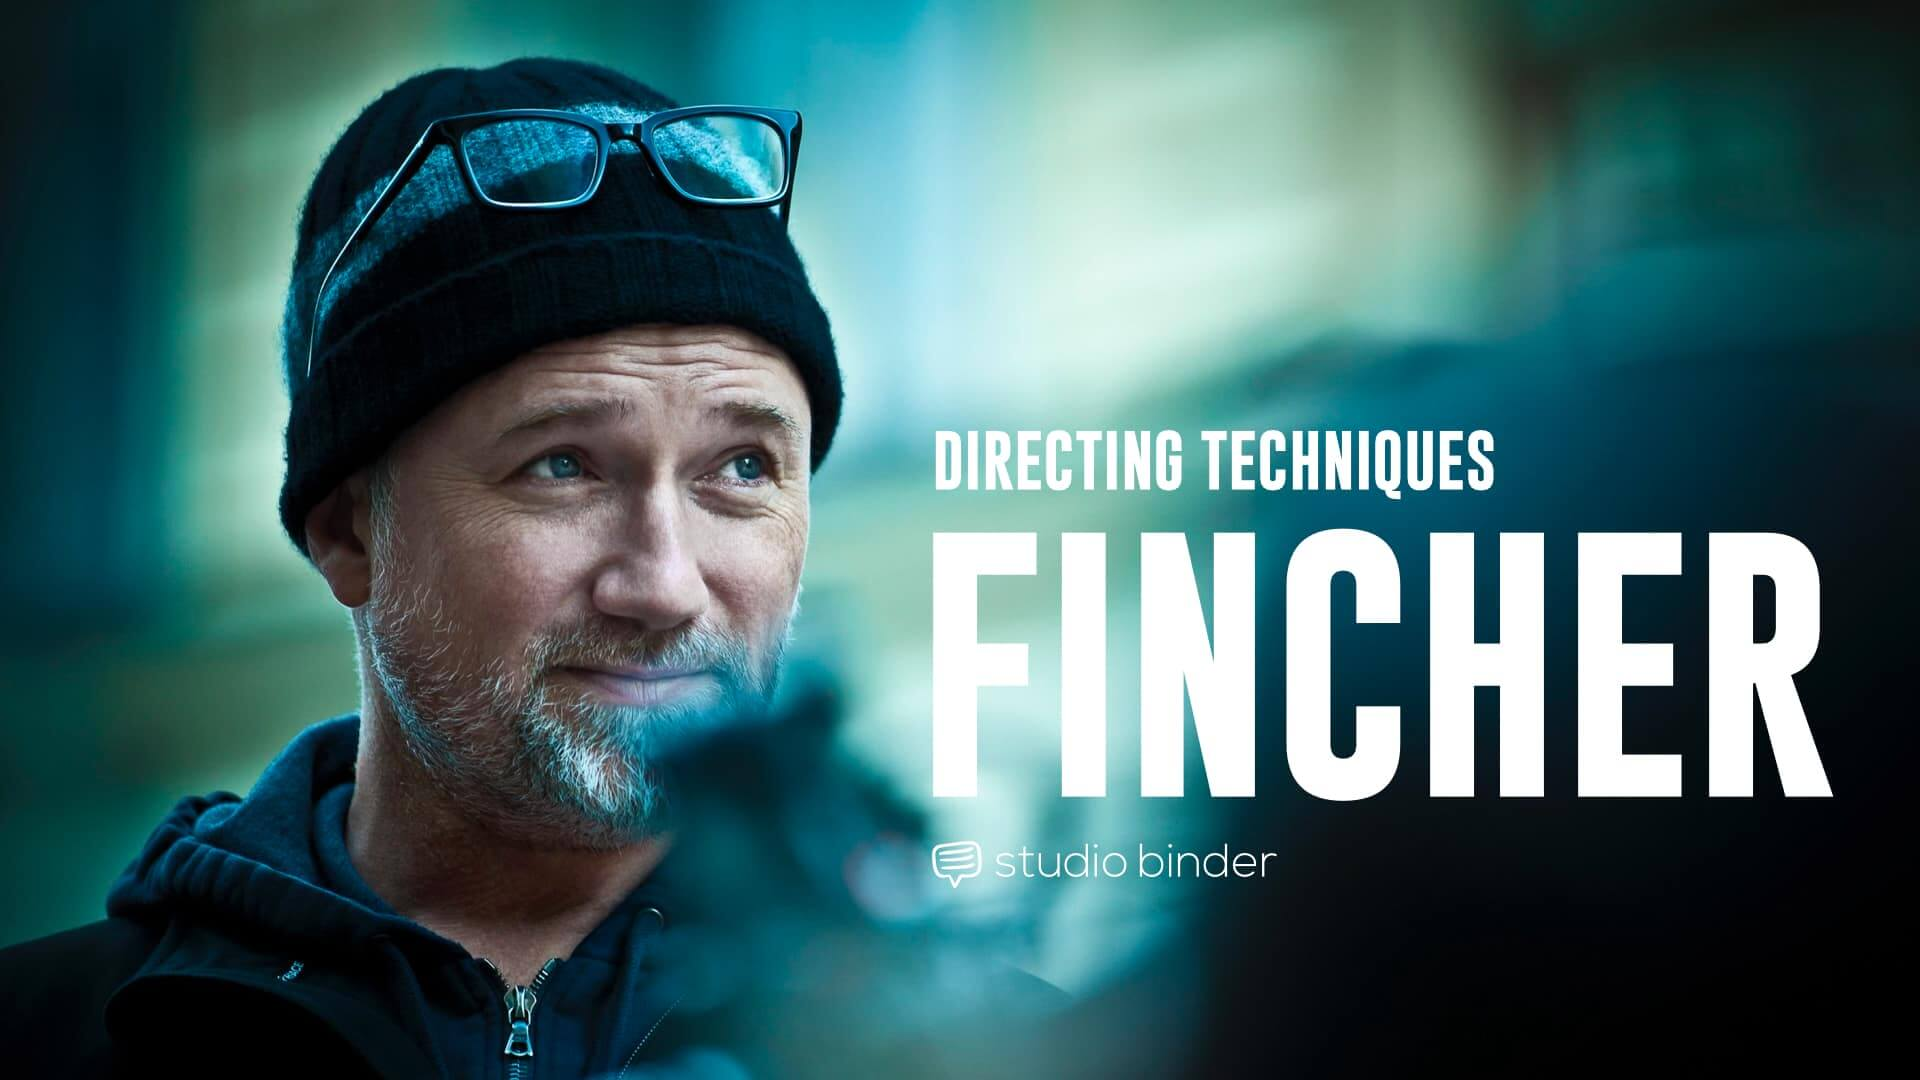 The Directing Techniques of David Fincher